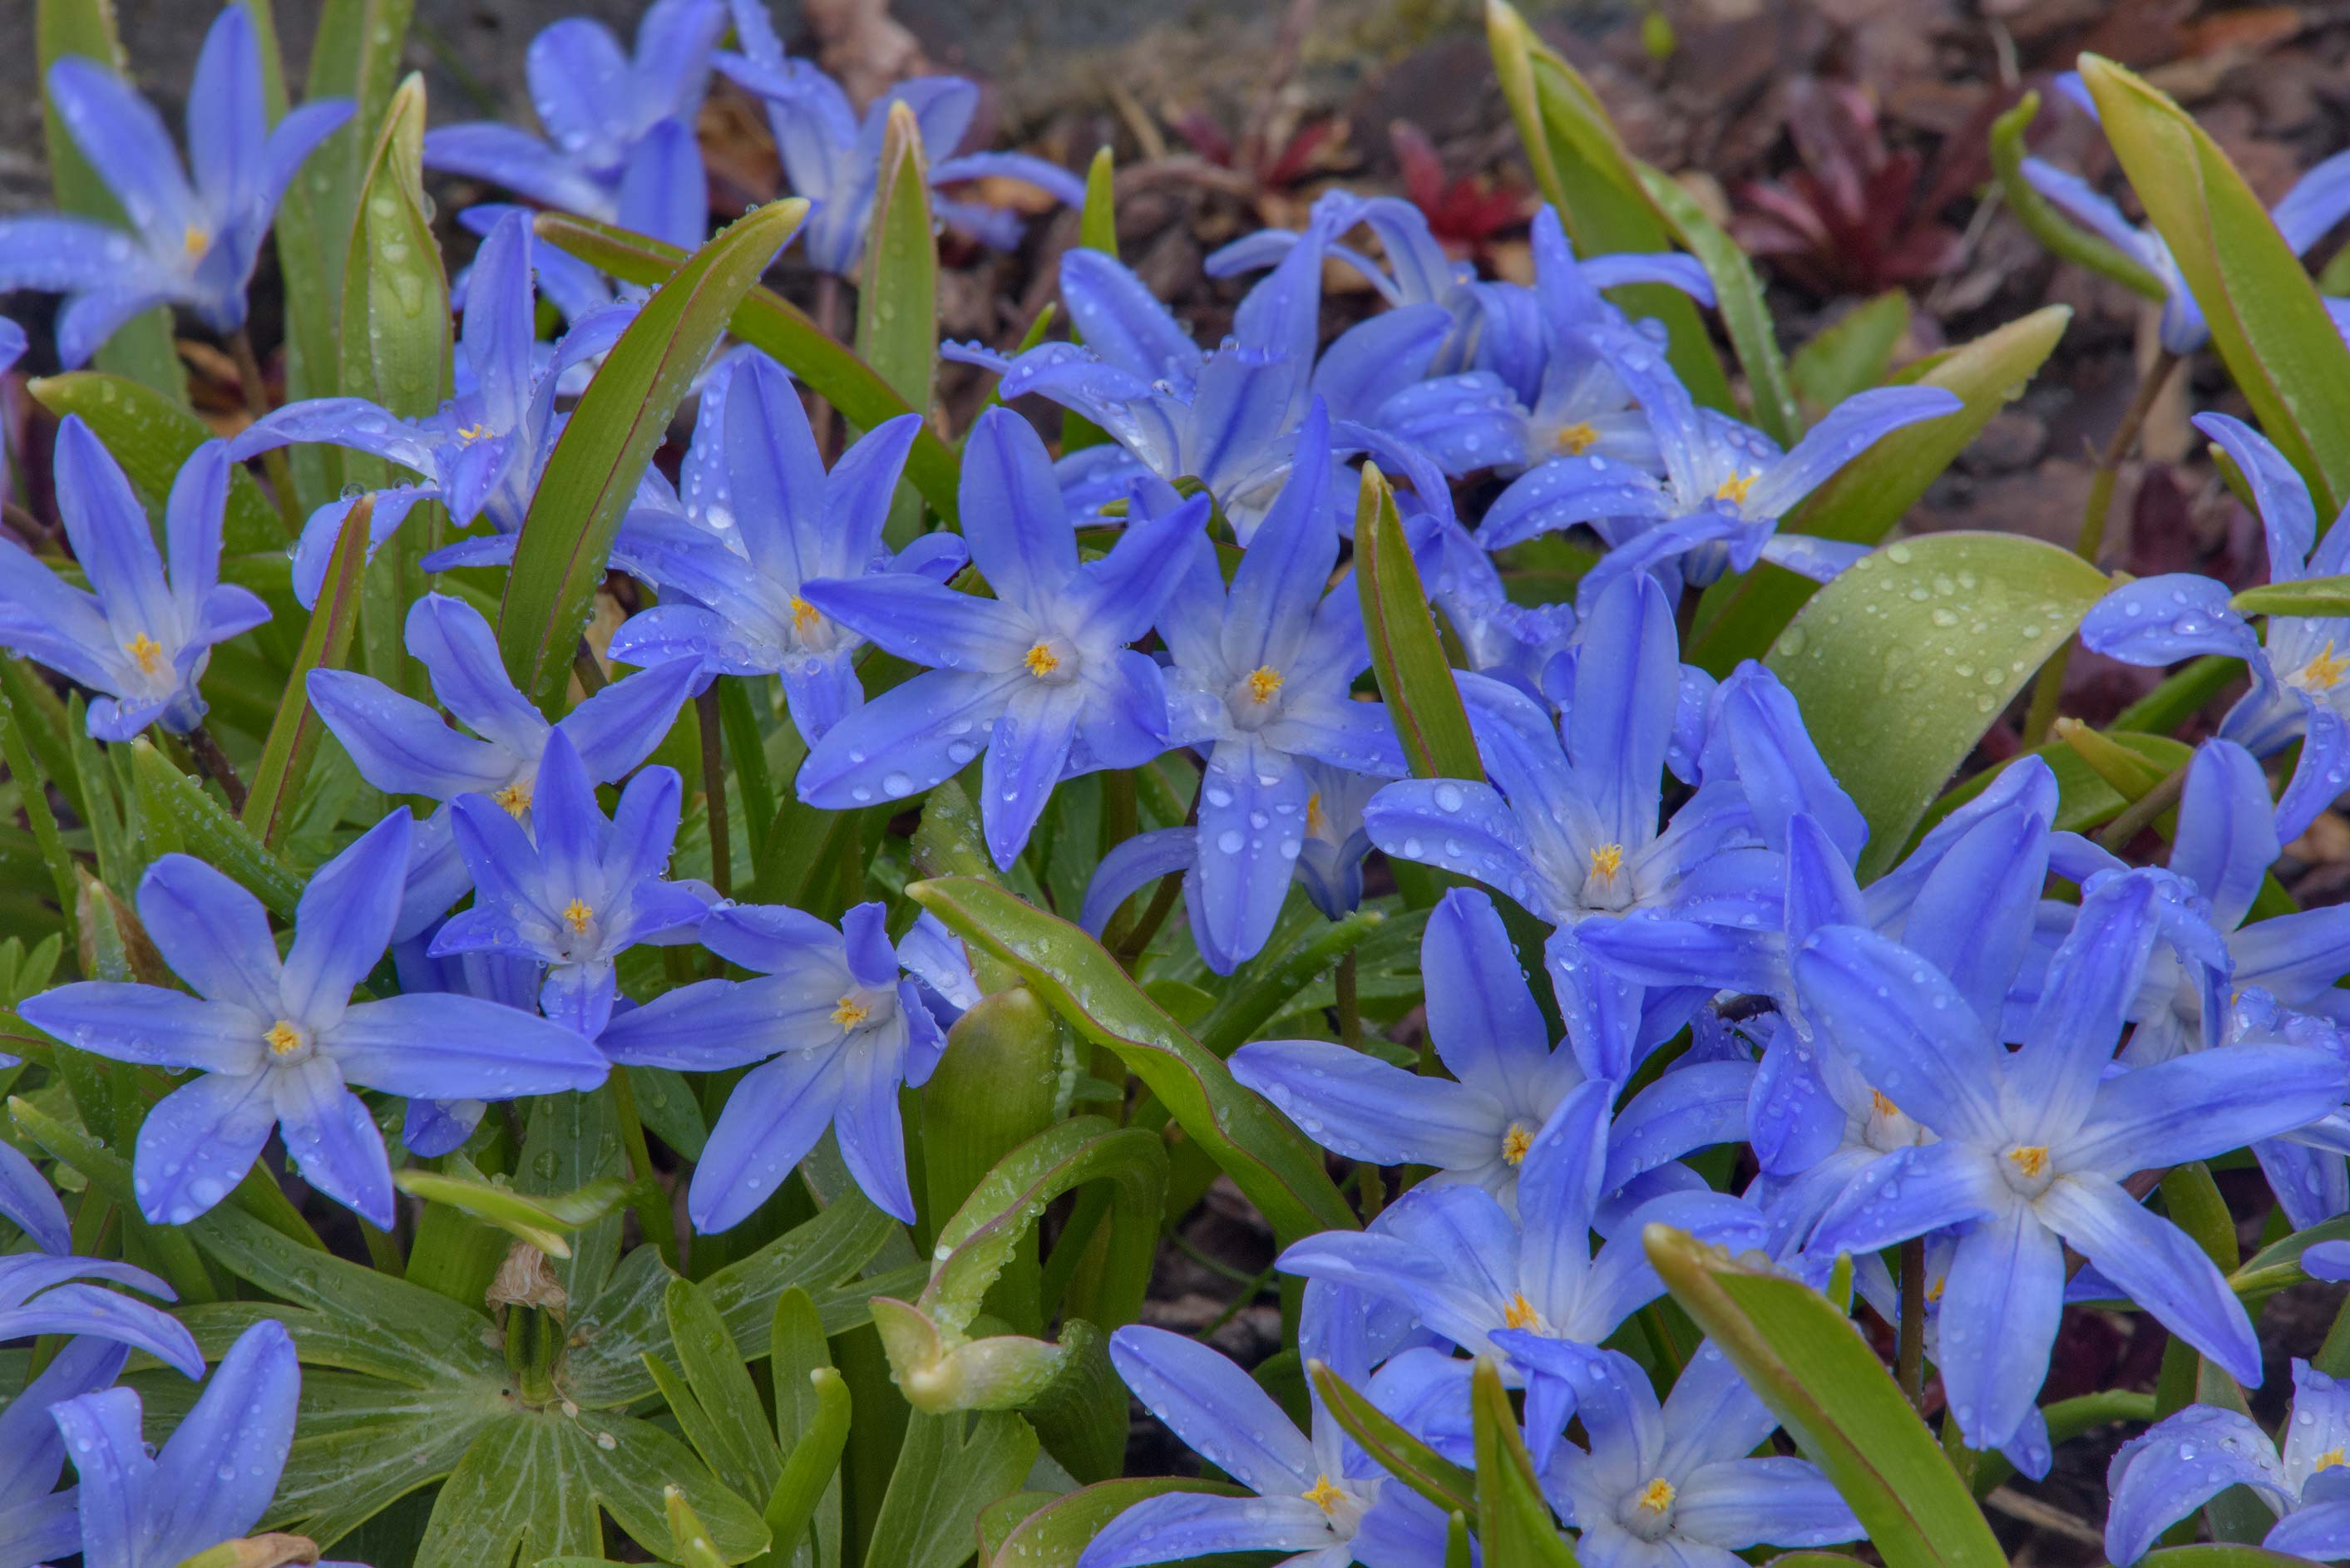 Flowers of Lucile's glory-of-the-snow (Chionodoxa...Institute. St.Petersburg, Russia